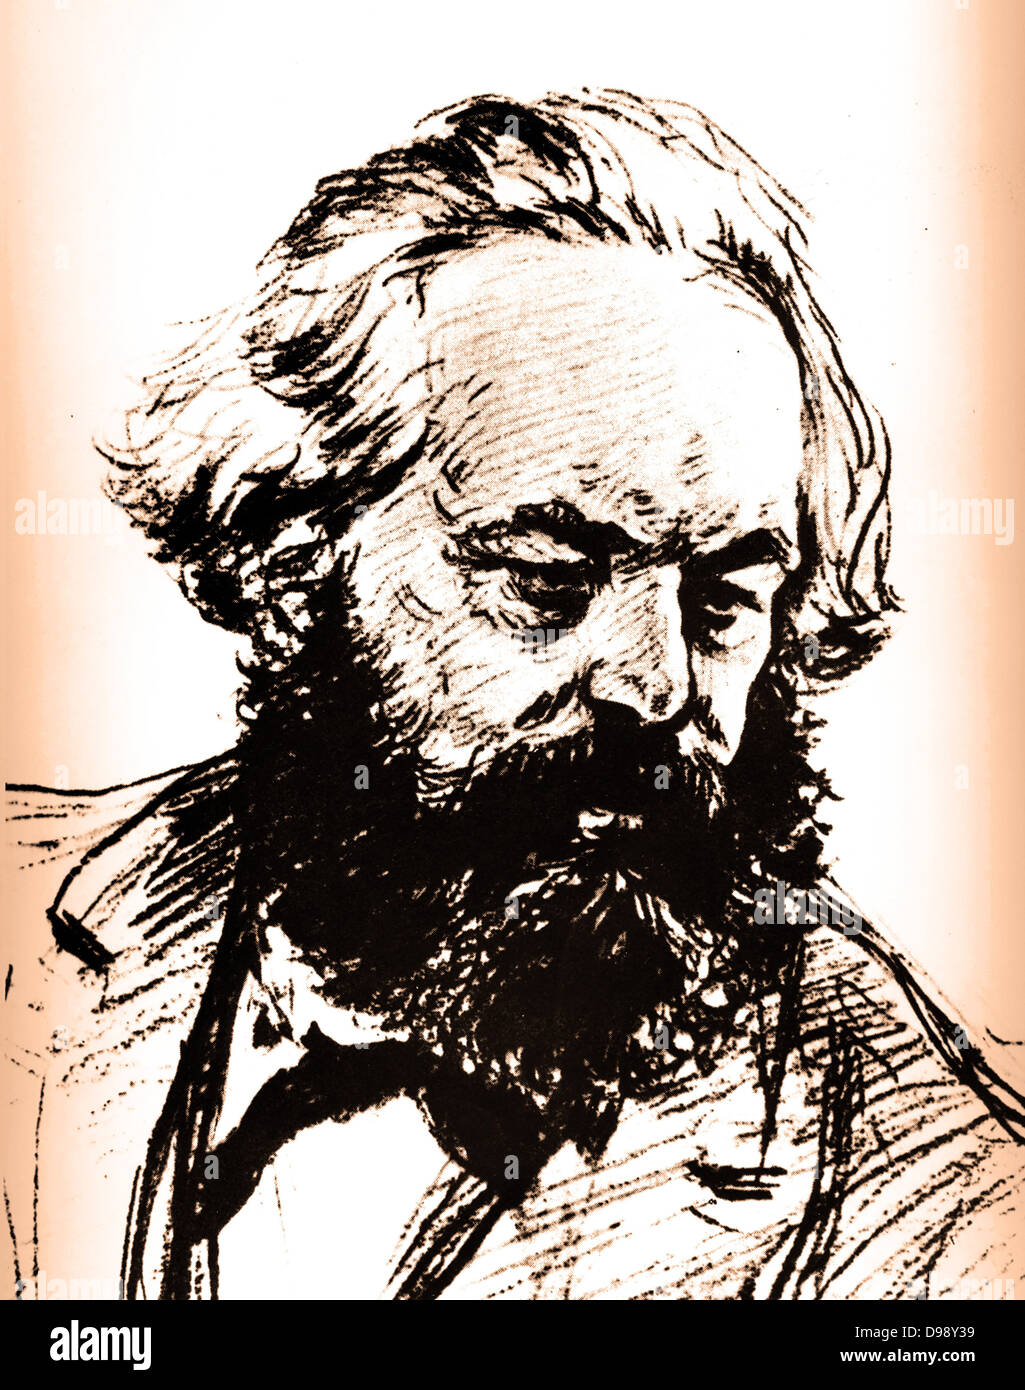 Karl Marx (1818-1883) Father of modern Communism. German political, social and economic theorist - Stock Image